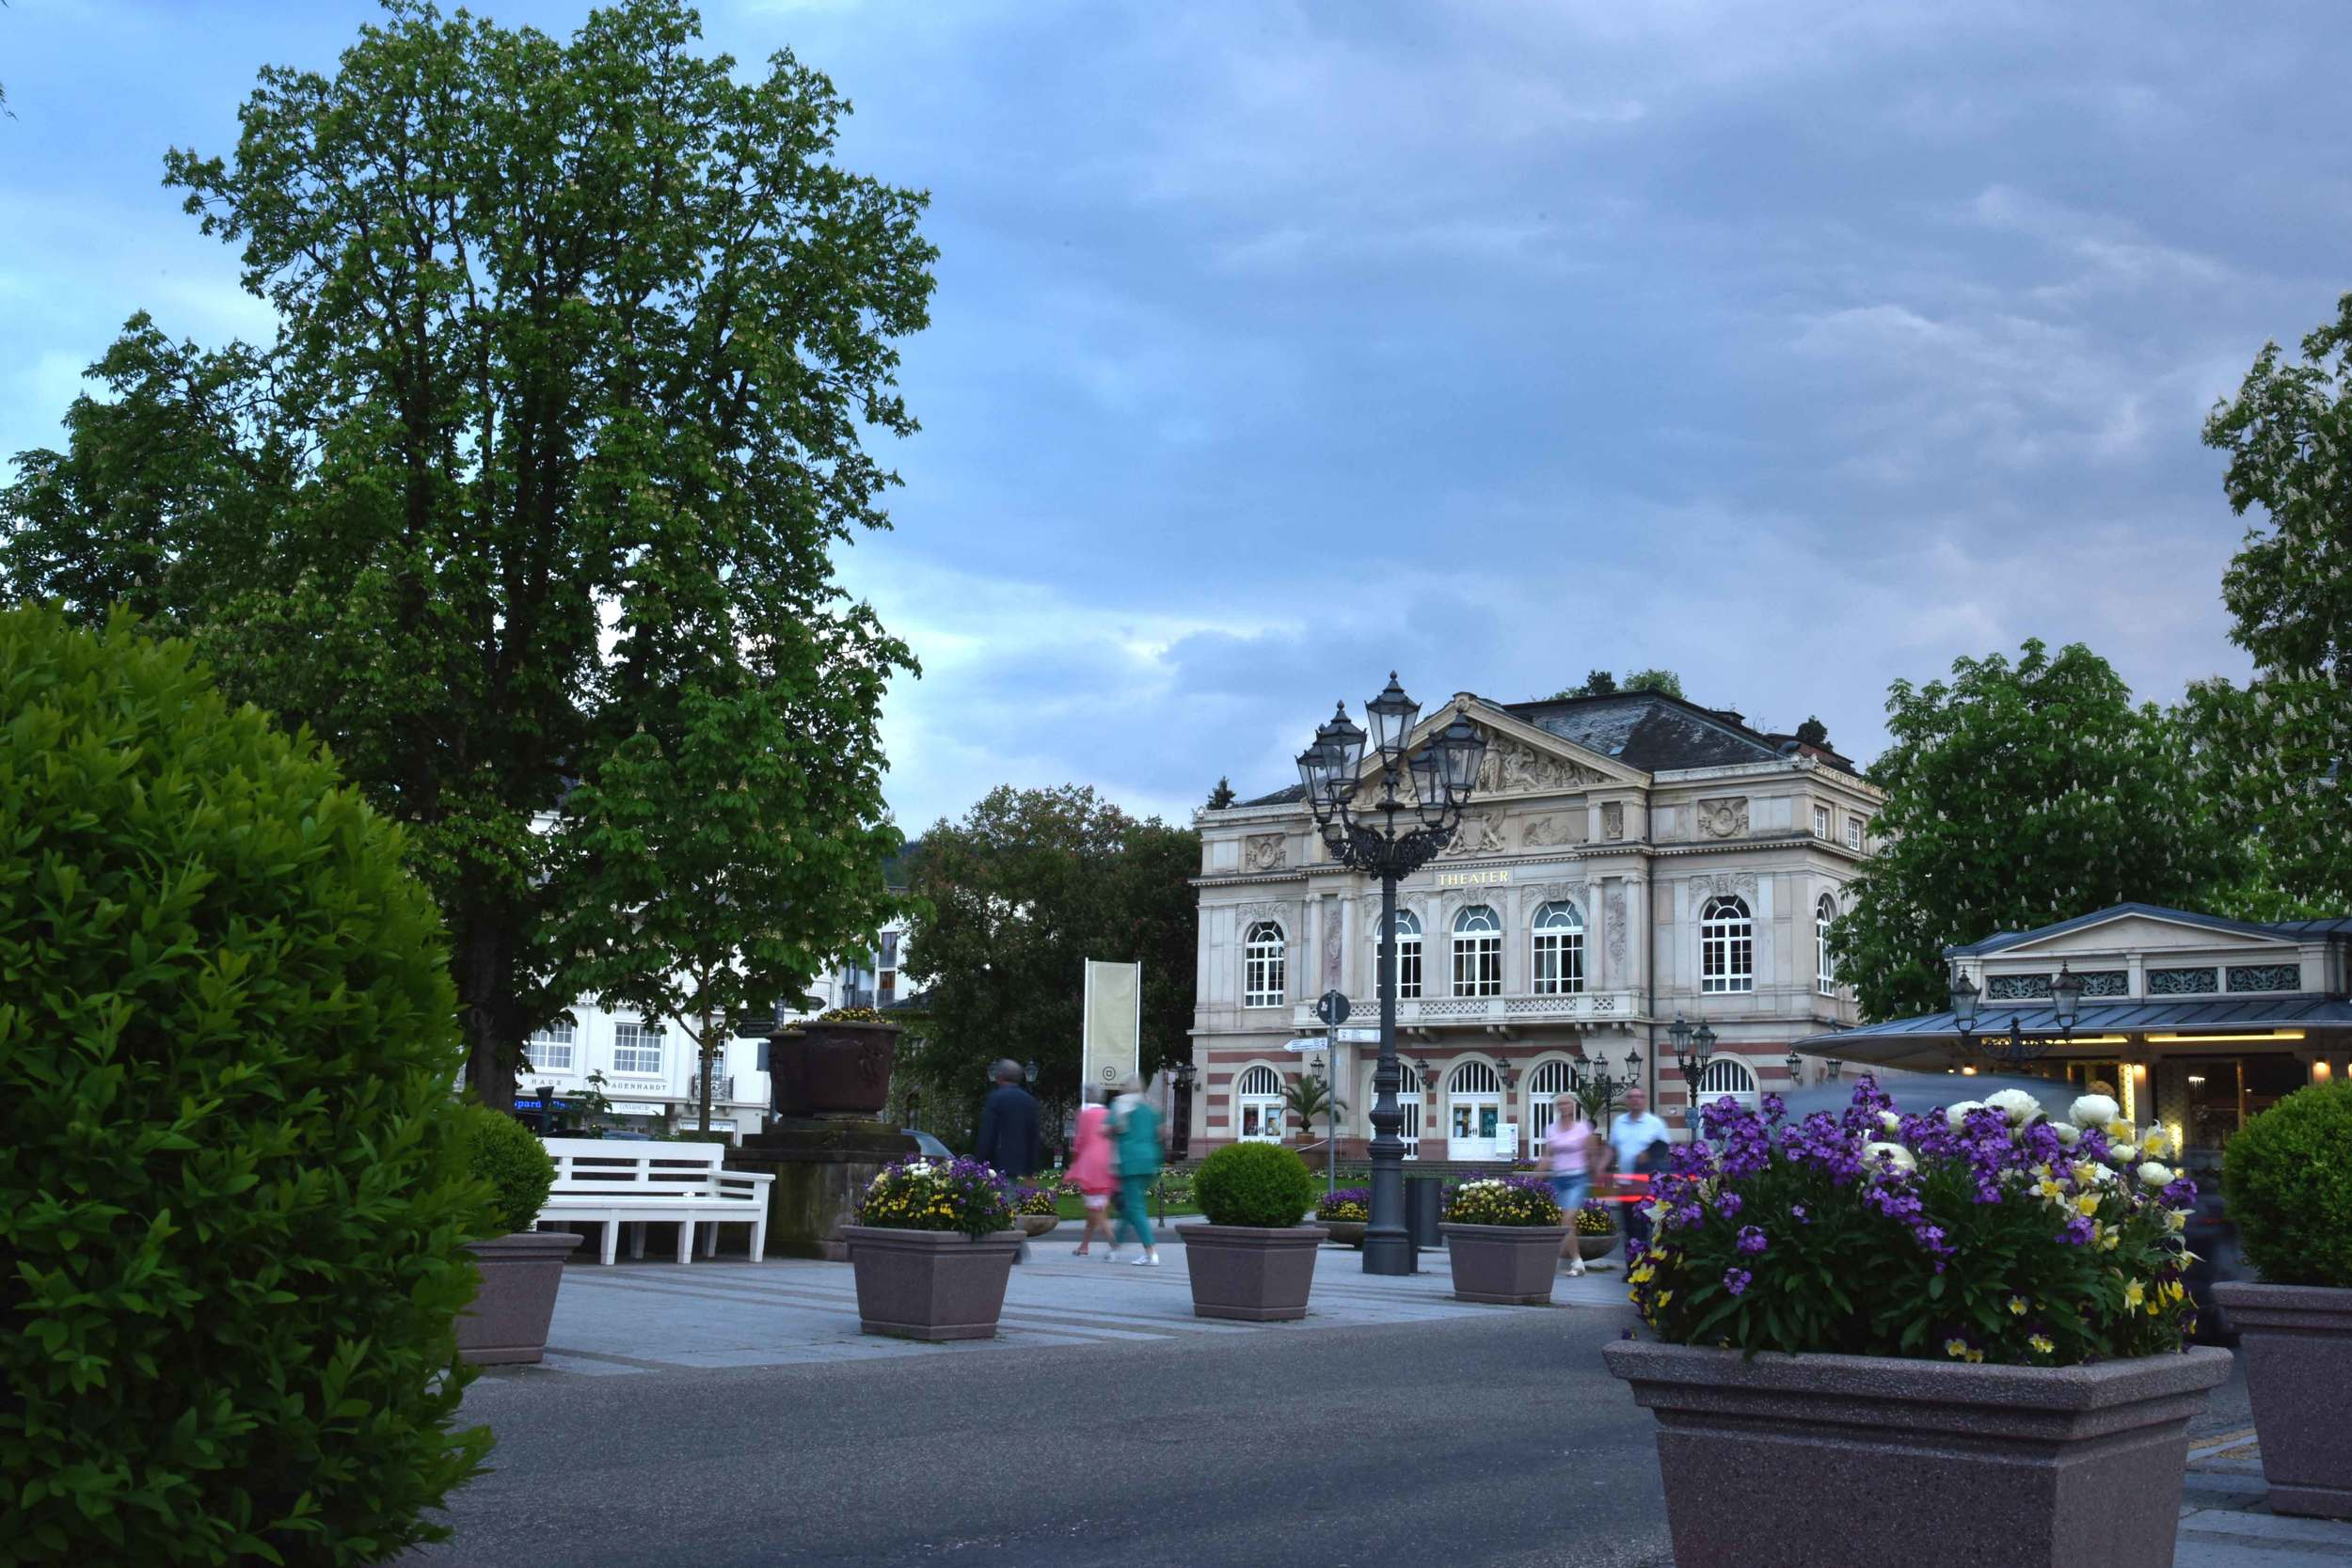 The theater, Baden Baden, Germany. Image©sourcingstyle.com